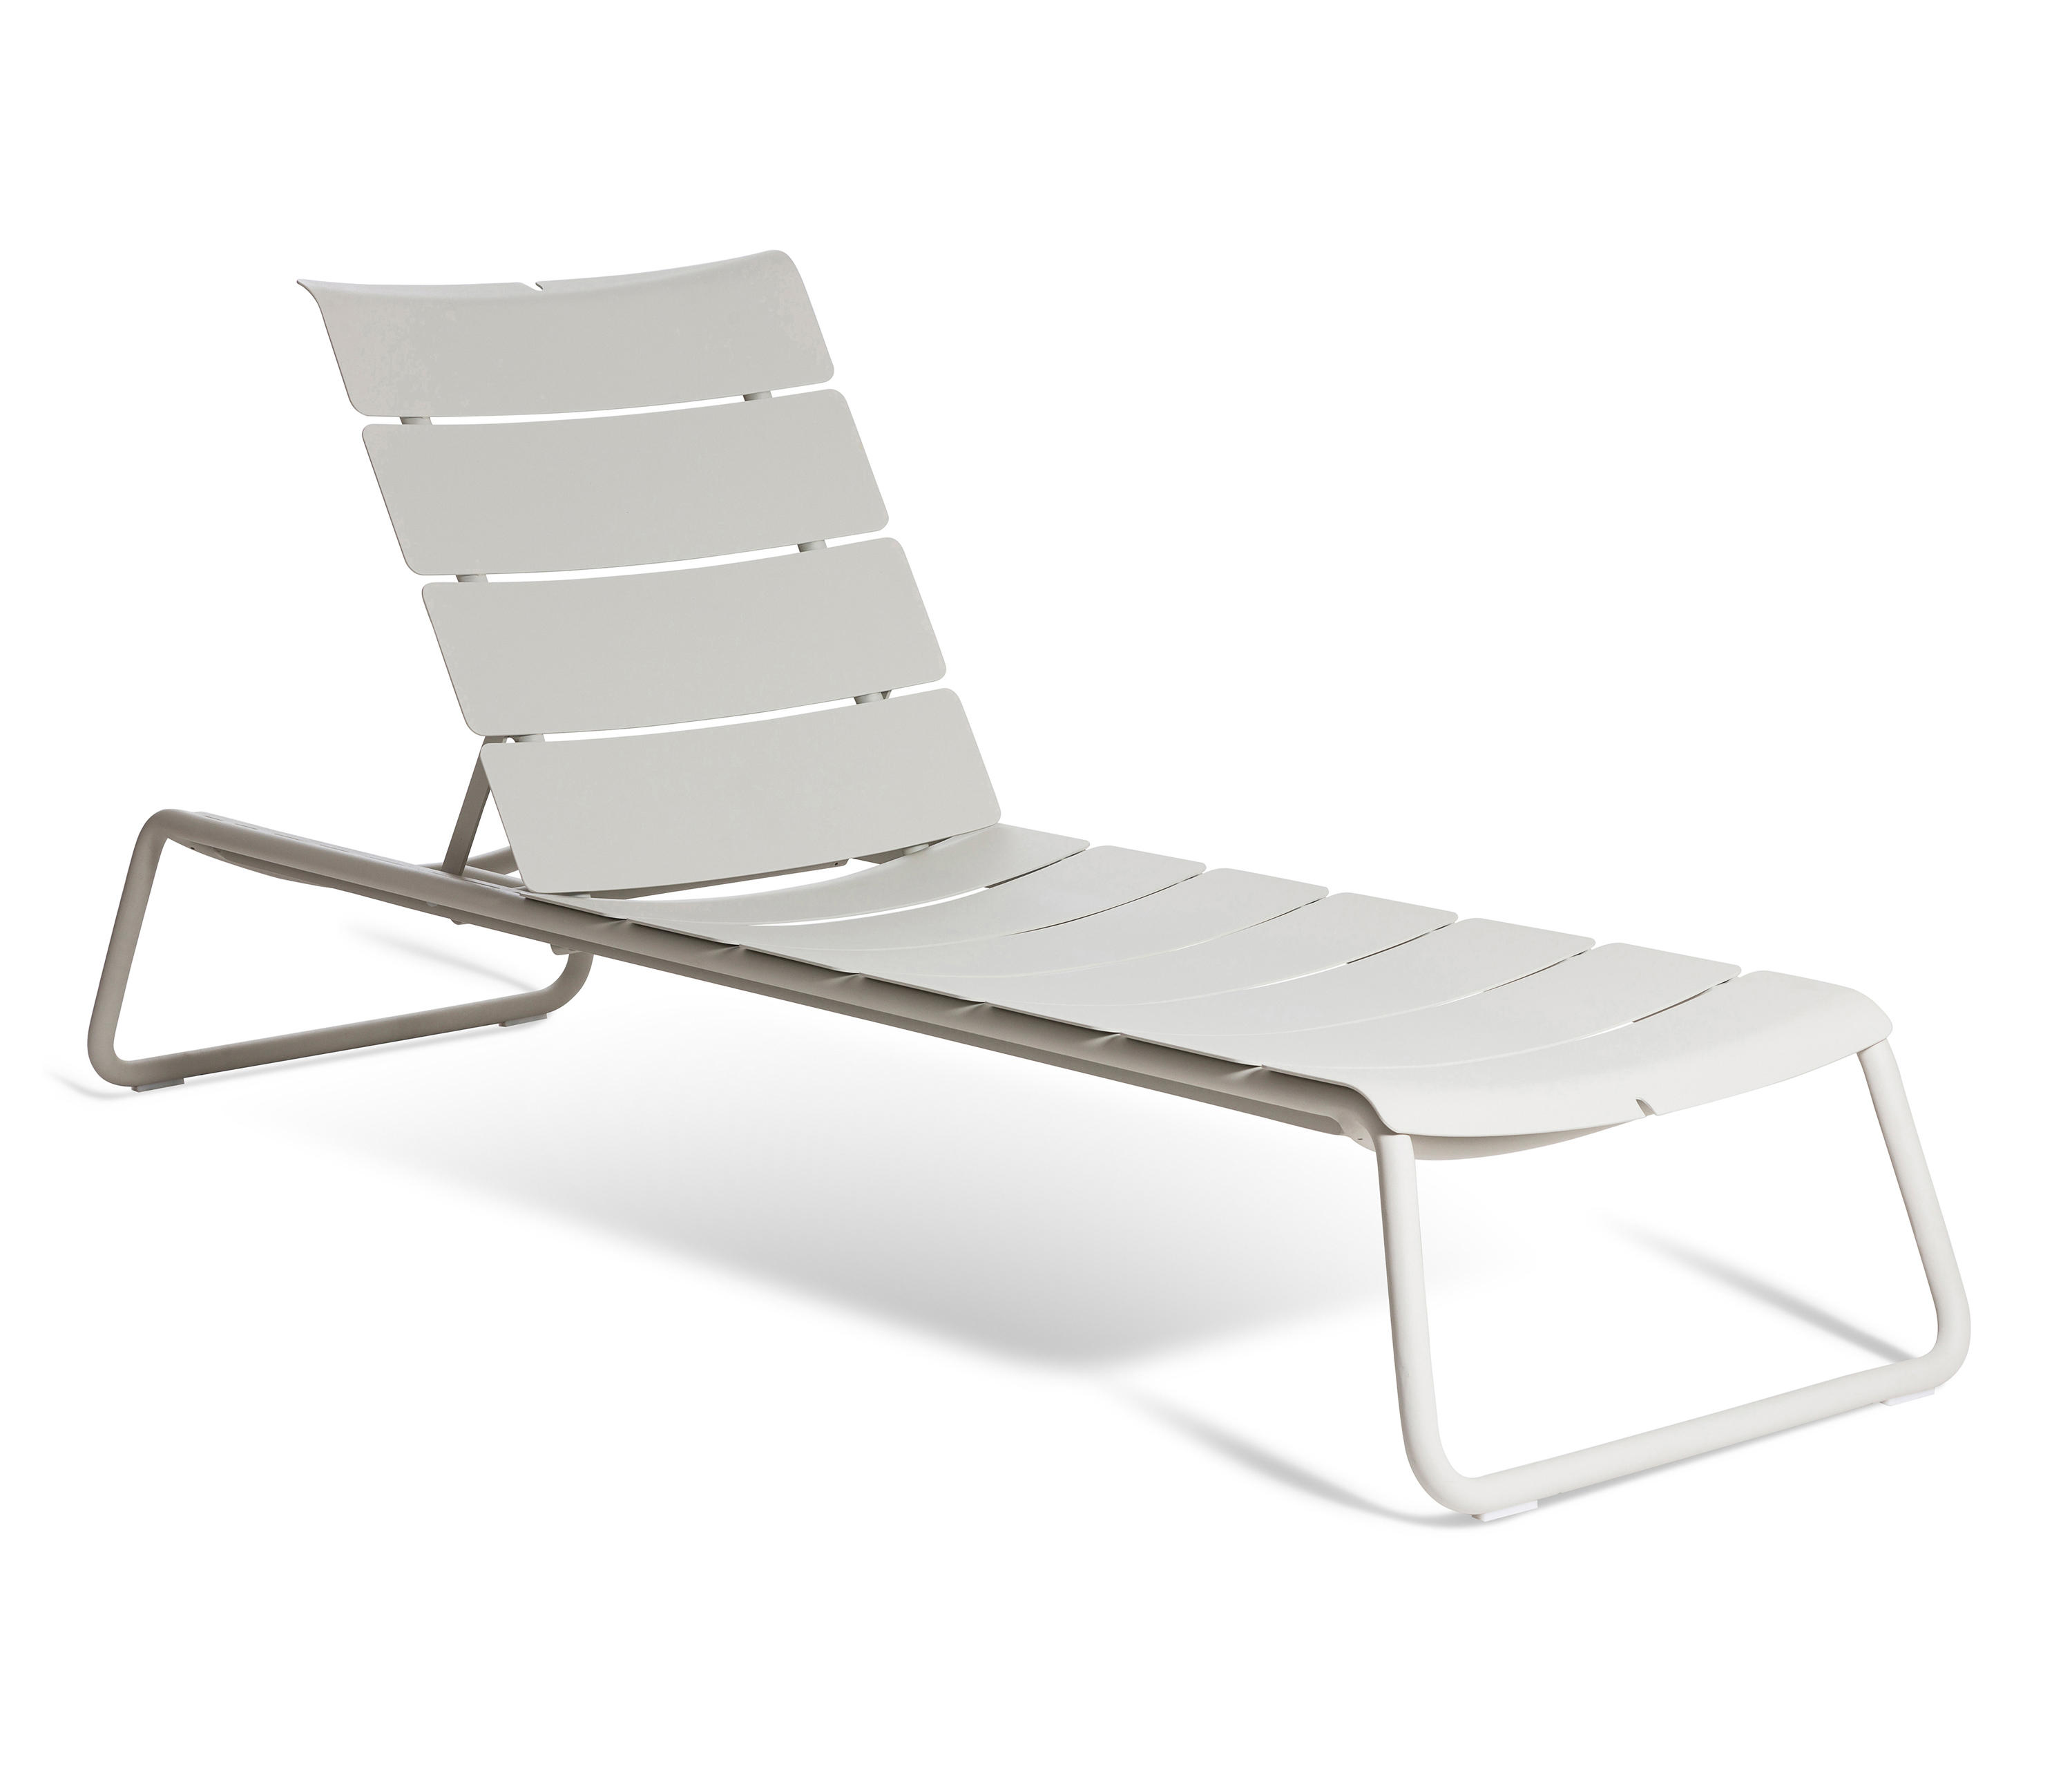 White Plastic Sun Loungers Corail Sun Lounger Sun Loungers From Oasiq Architonic